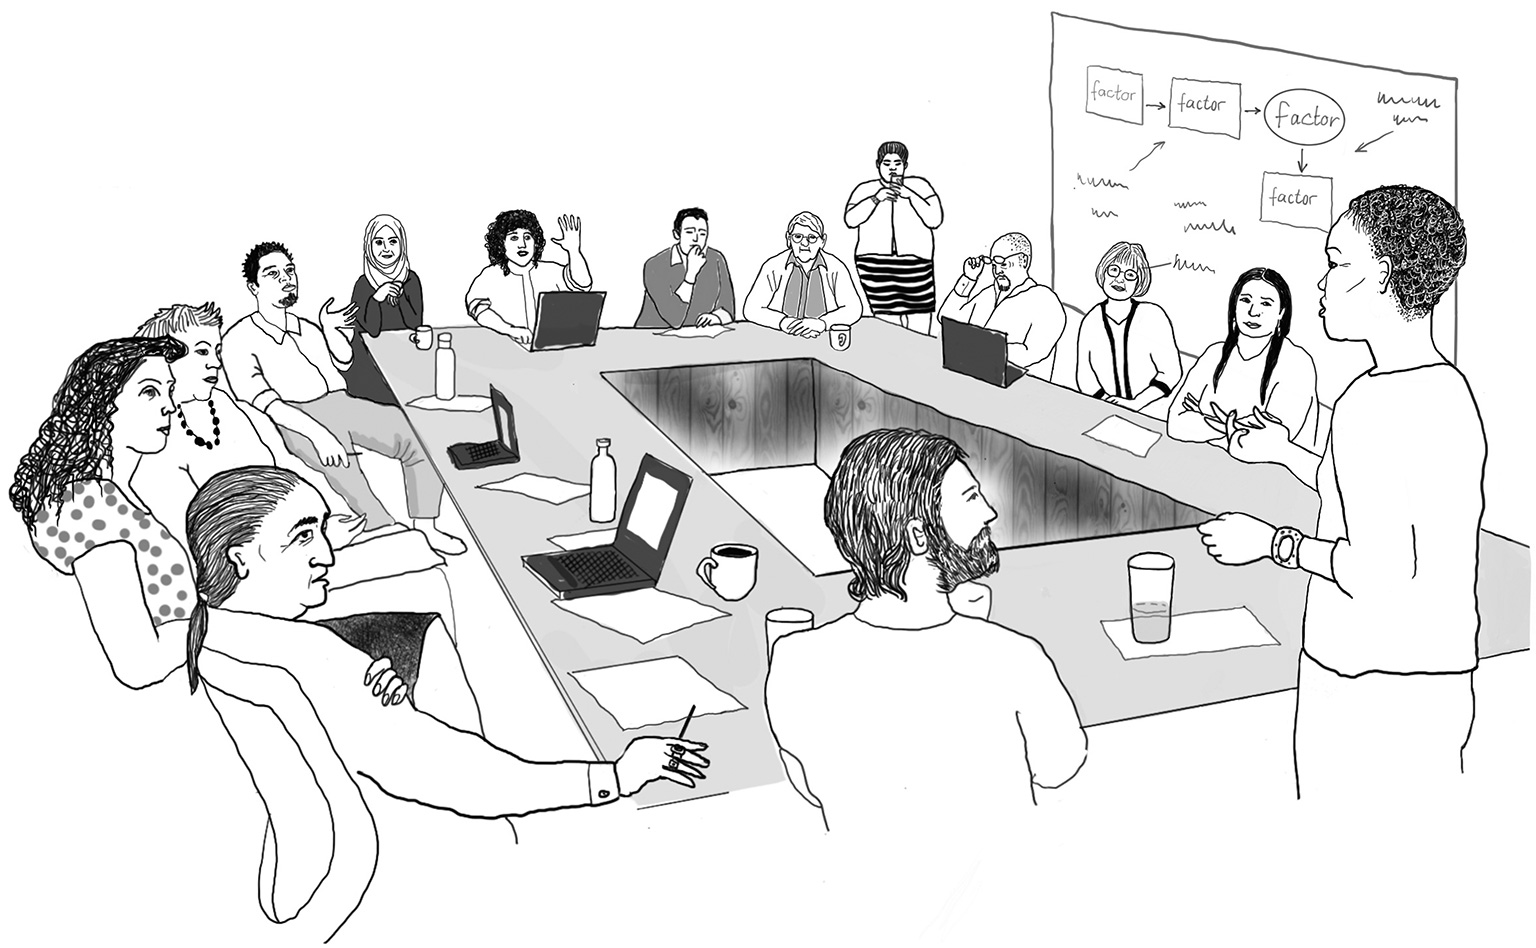 A typical program team is responsible for developing an explicit strategy for going to scale. Illustration by Anna Balla, from Pathways to Success, forthcoming from Island Press.